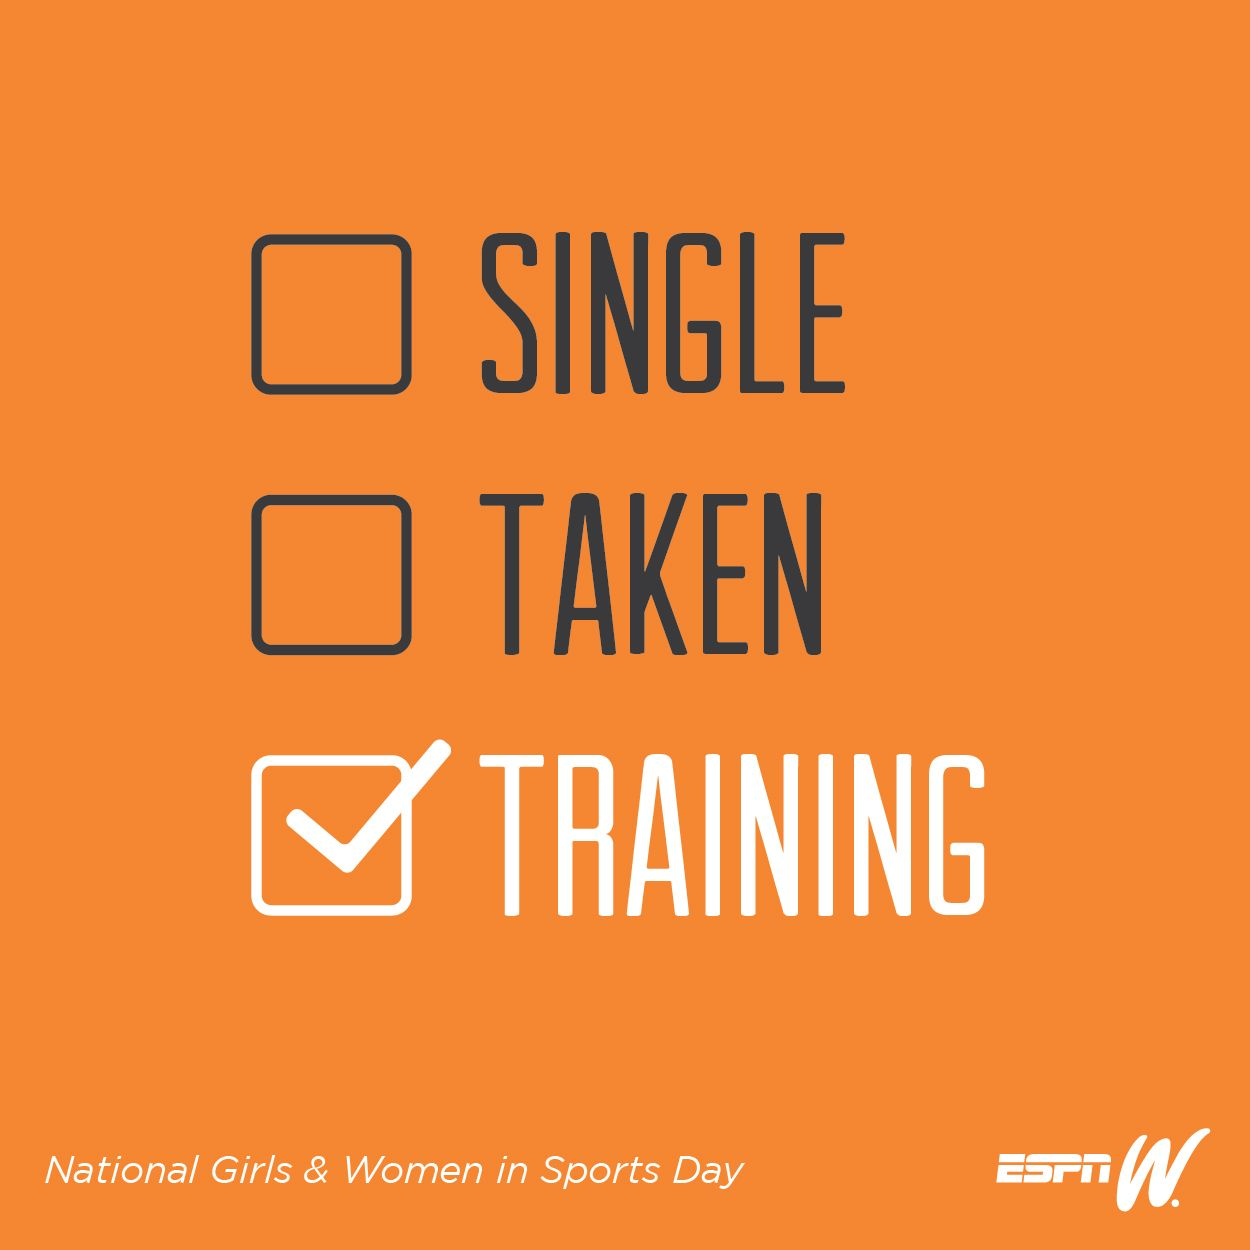 A Library Of Inspirational Art To Help You Celebrate National Girls And Women In Sports Day Sports Quotes Soccer Quotes Swimming Quotes